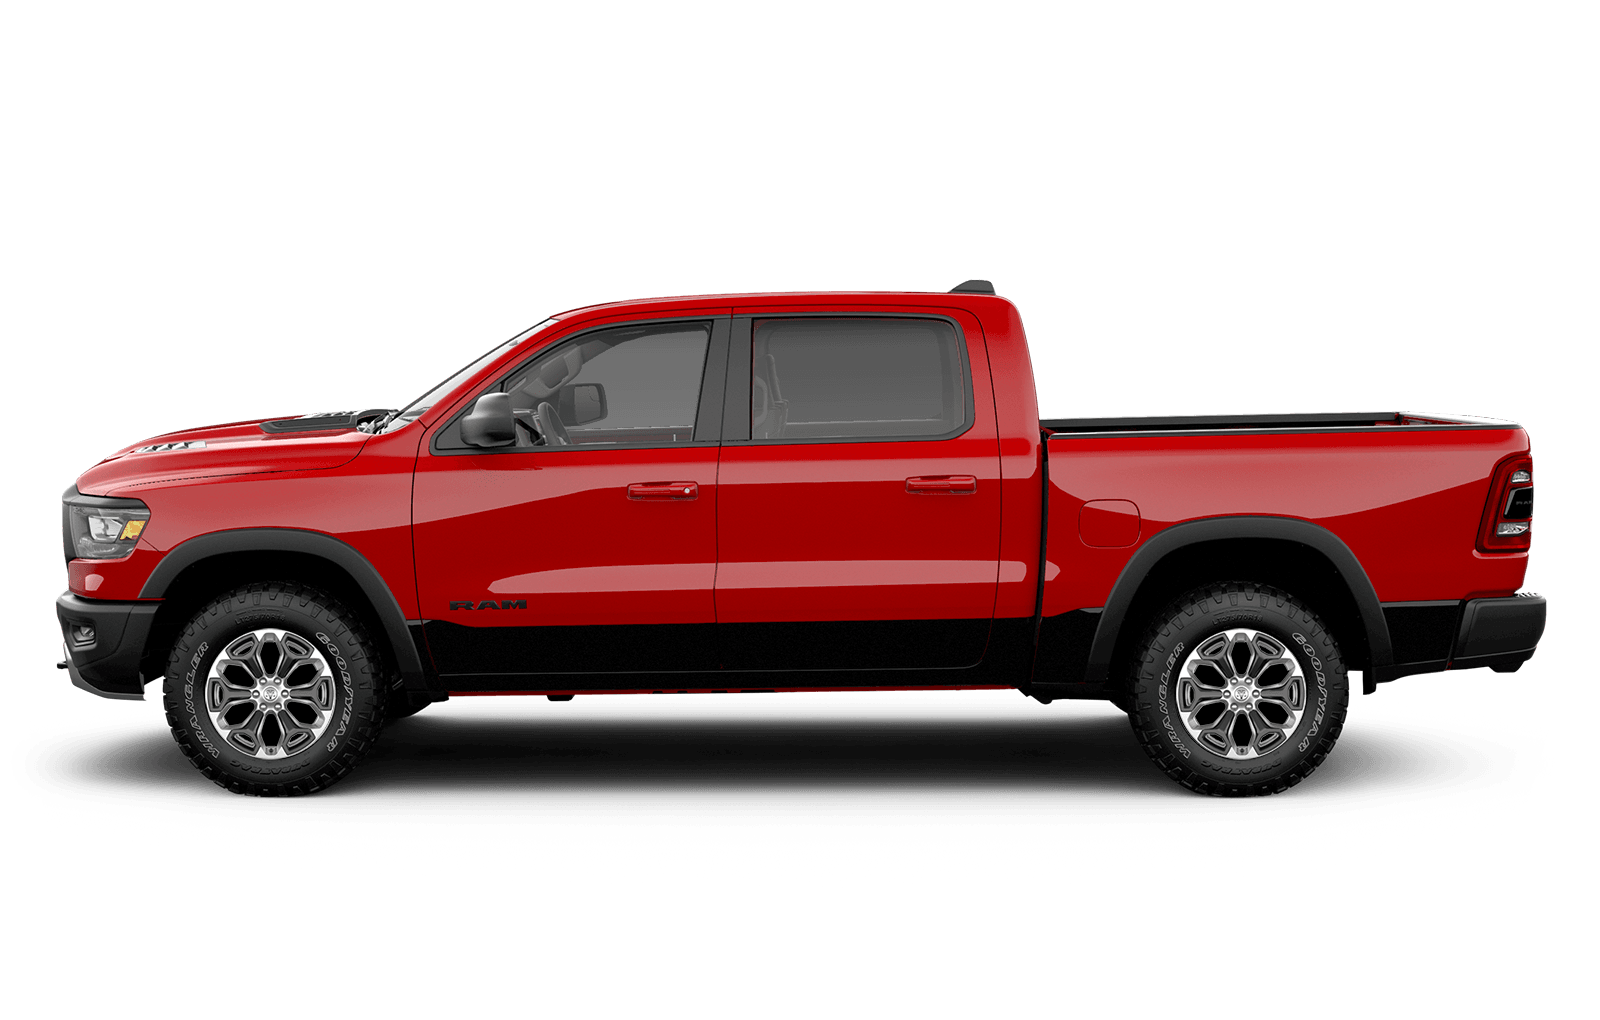 2019 Ram 1500 22inch polished painted aluminum on red truck